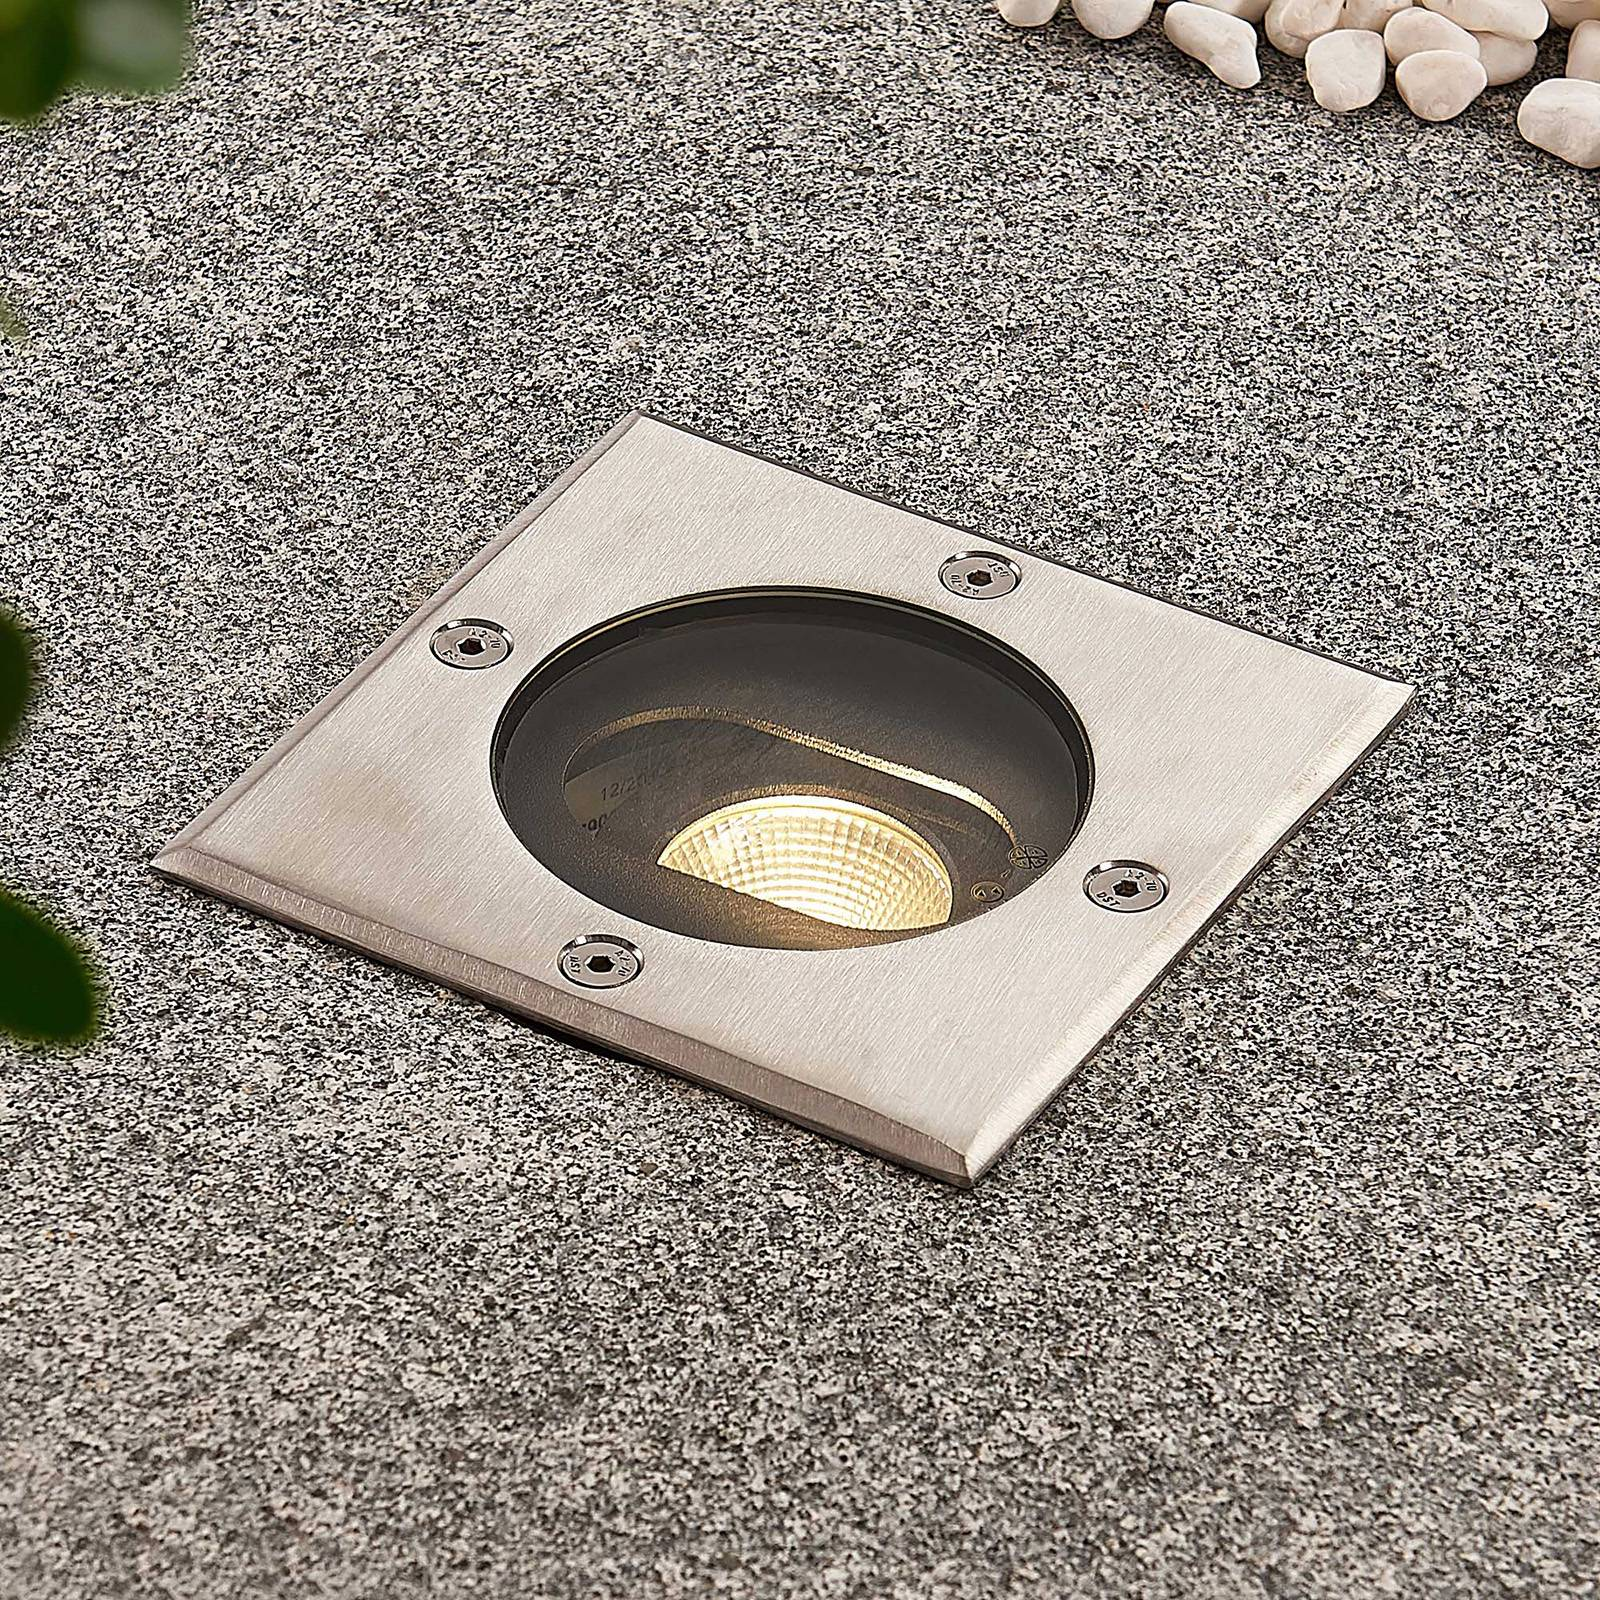 Doris - angular LED recessed floor light from Lucande